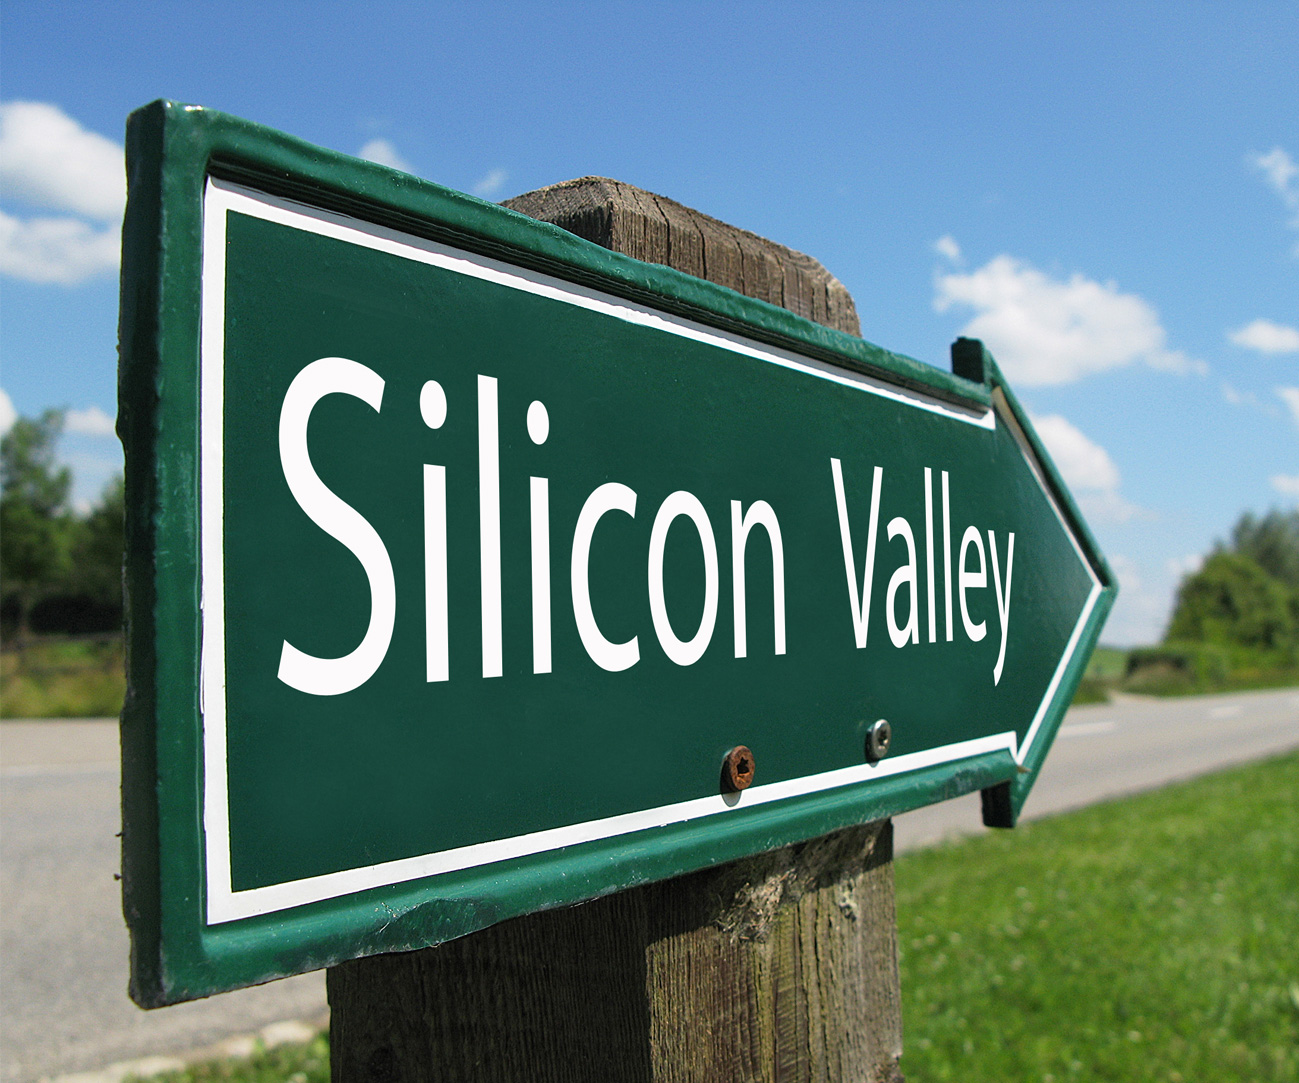 To Silicon Valley